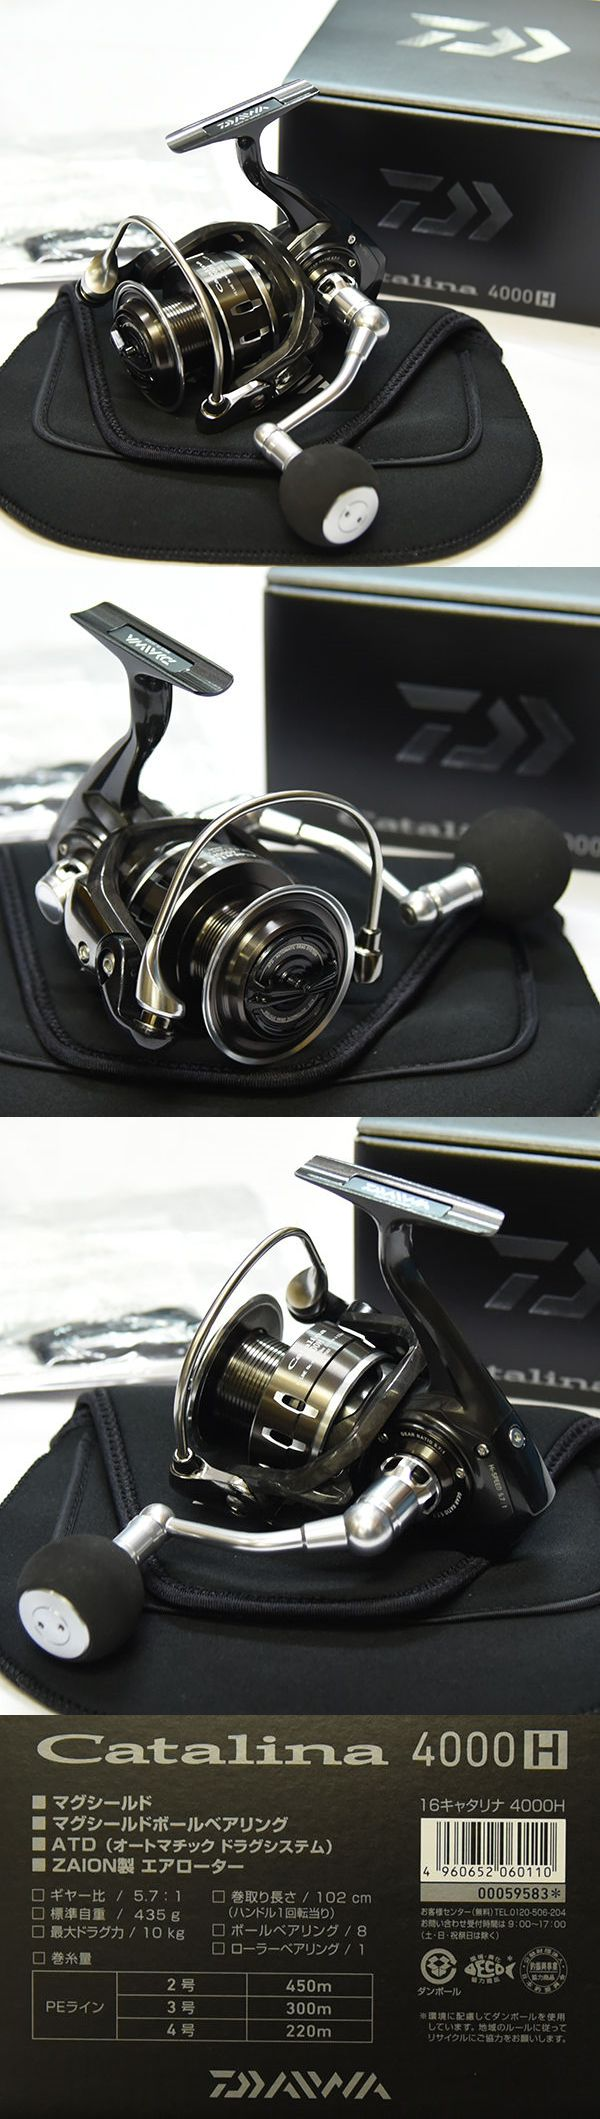 Spinning Reels 36147: 2016 New Daiwa Catalina 4000H Magsealed Spinning Reel From Japan -> BUY IT NOW ONLY: $419 on eBay!